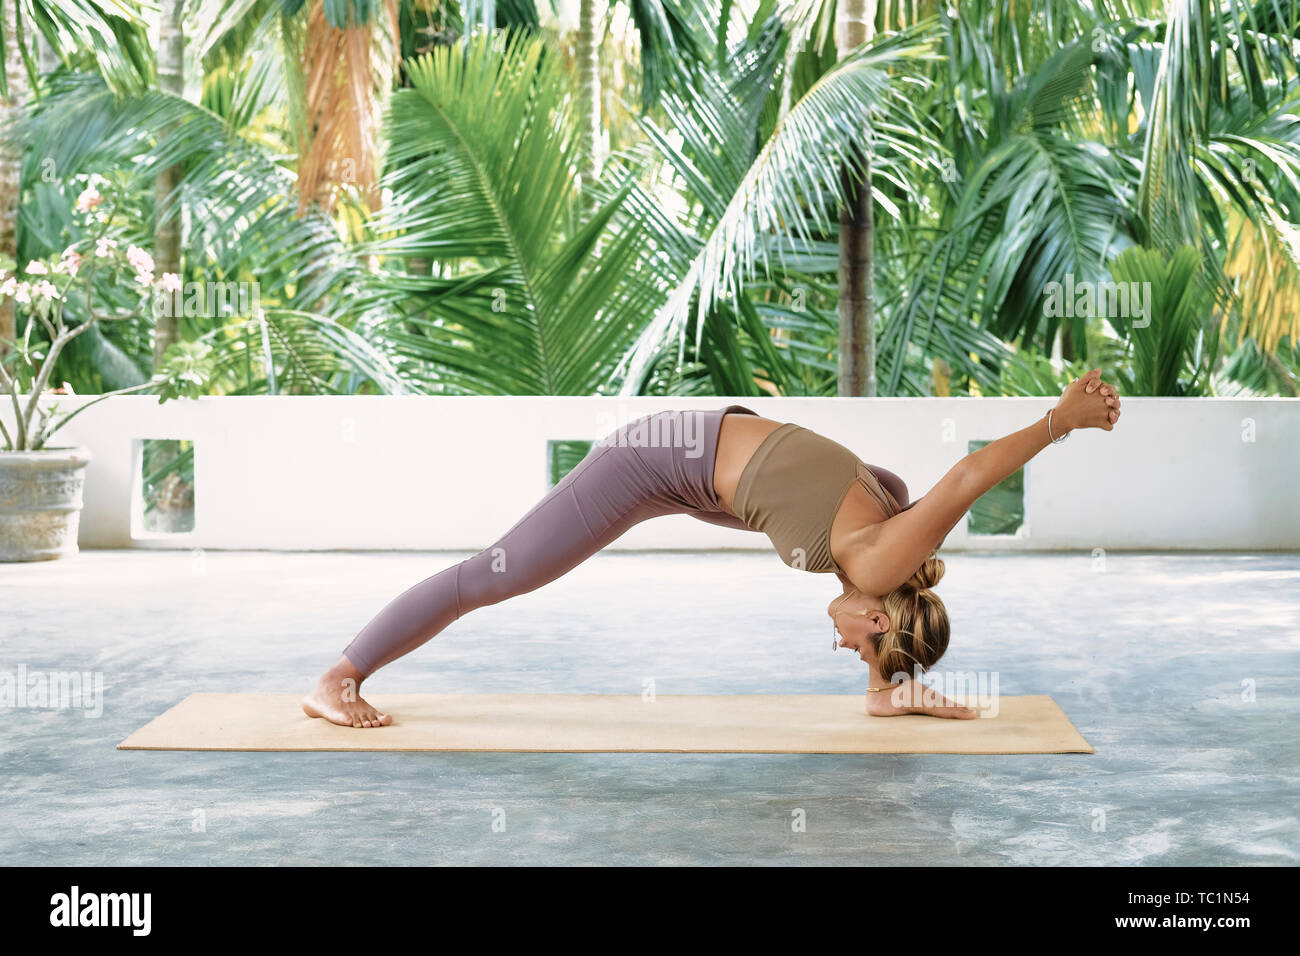 Woman Practicing Advanced Yoga On Organic Mat Series Of Yoga Poses Tropical Background Lifestyle Concept Stock Photo Alamy